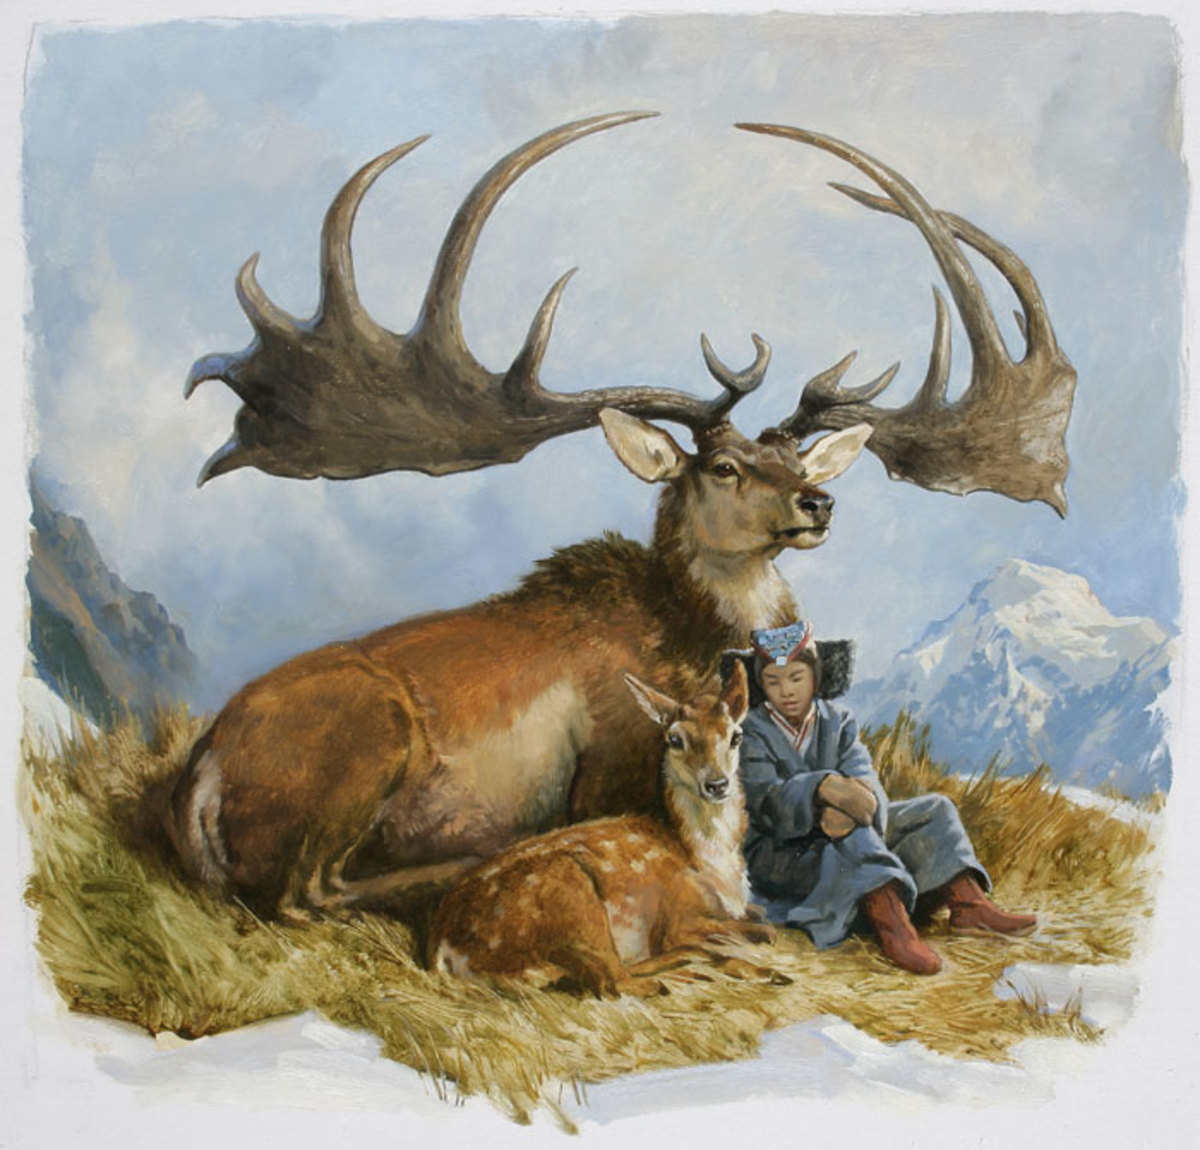 A painting by James Gurney depicting the difference in size between an Irish Elk and a person.